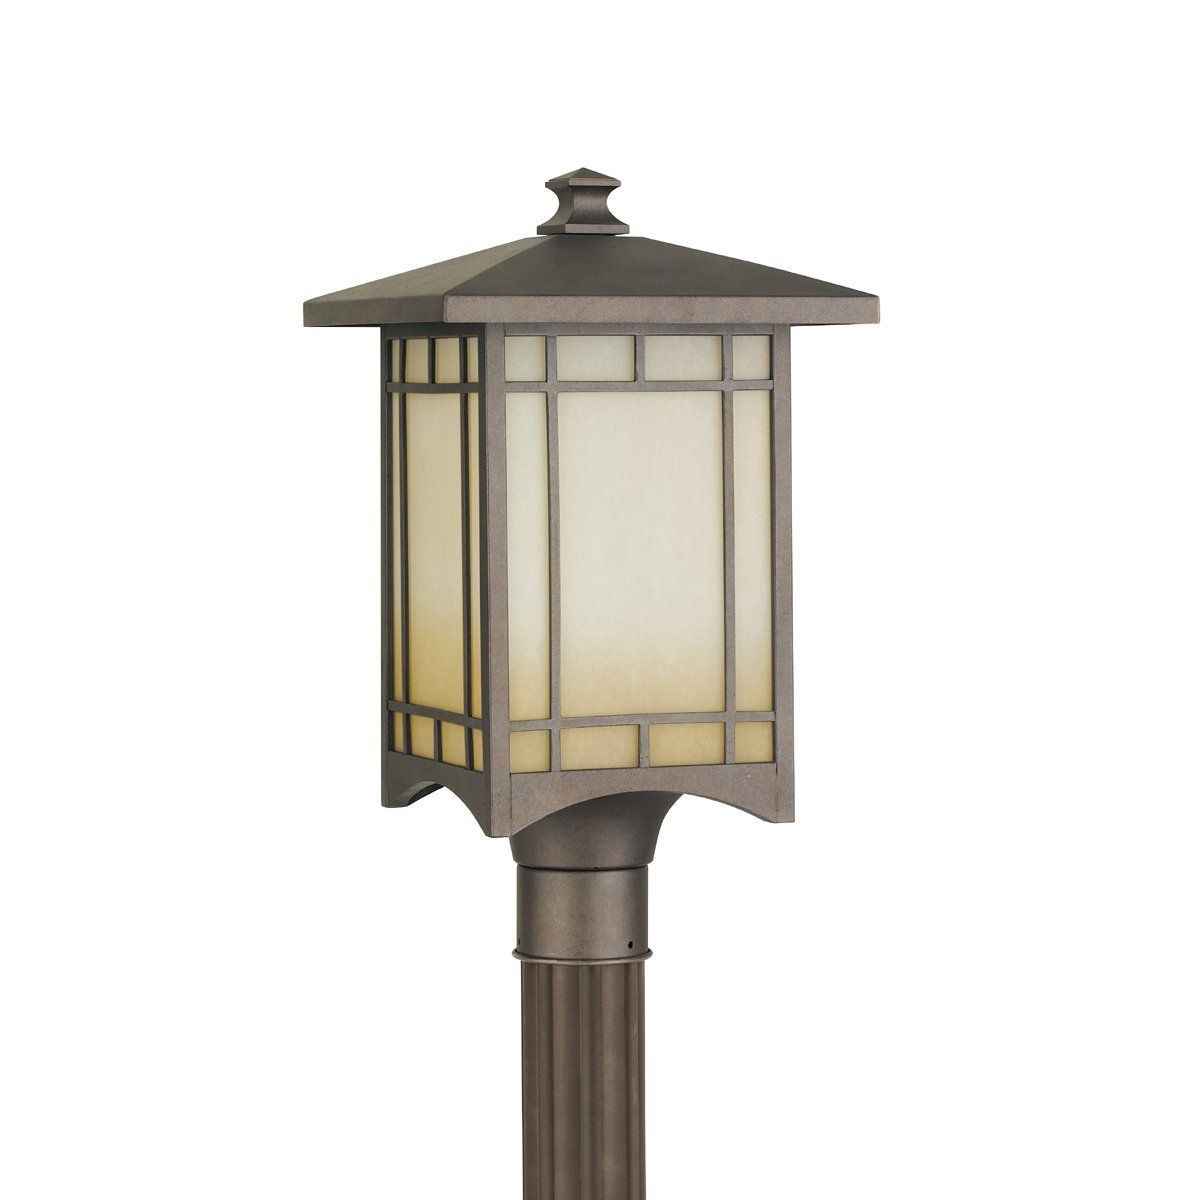 Pin By Jennifer Bancej On Lighting Outdoor Post Lights Post Lights Outdoor Lamp Posts